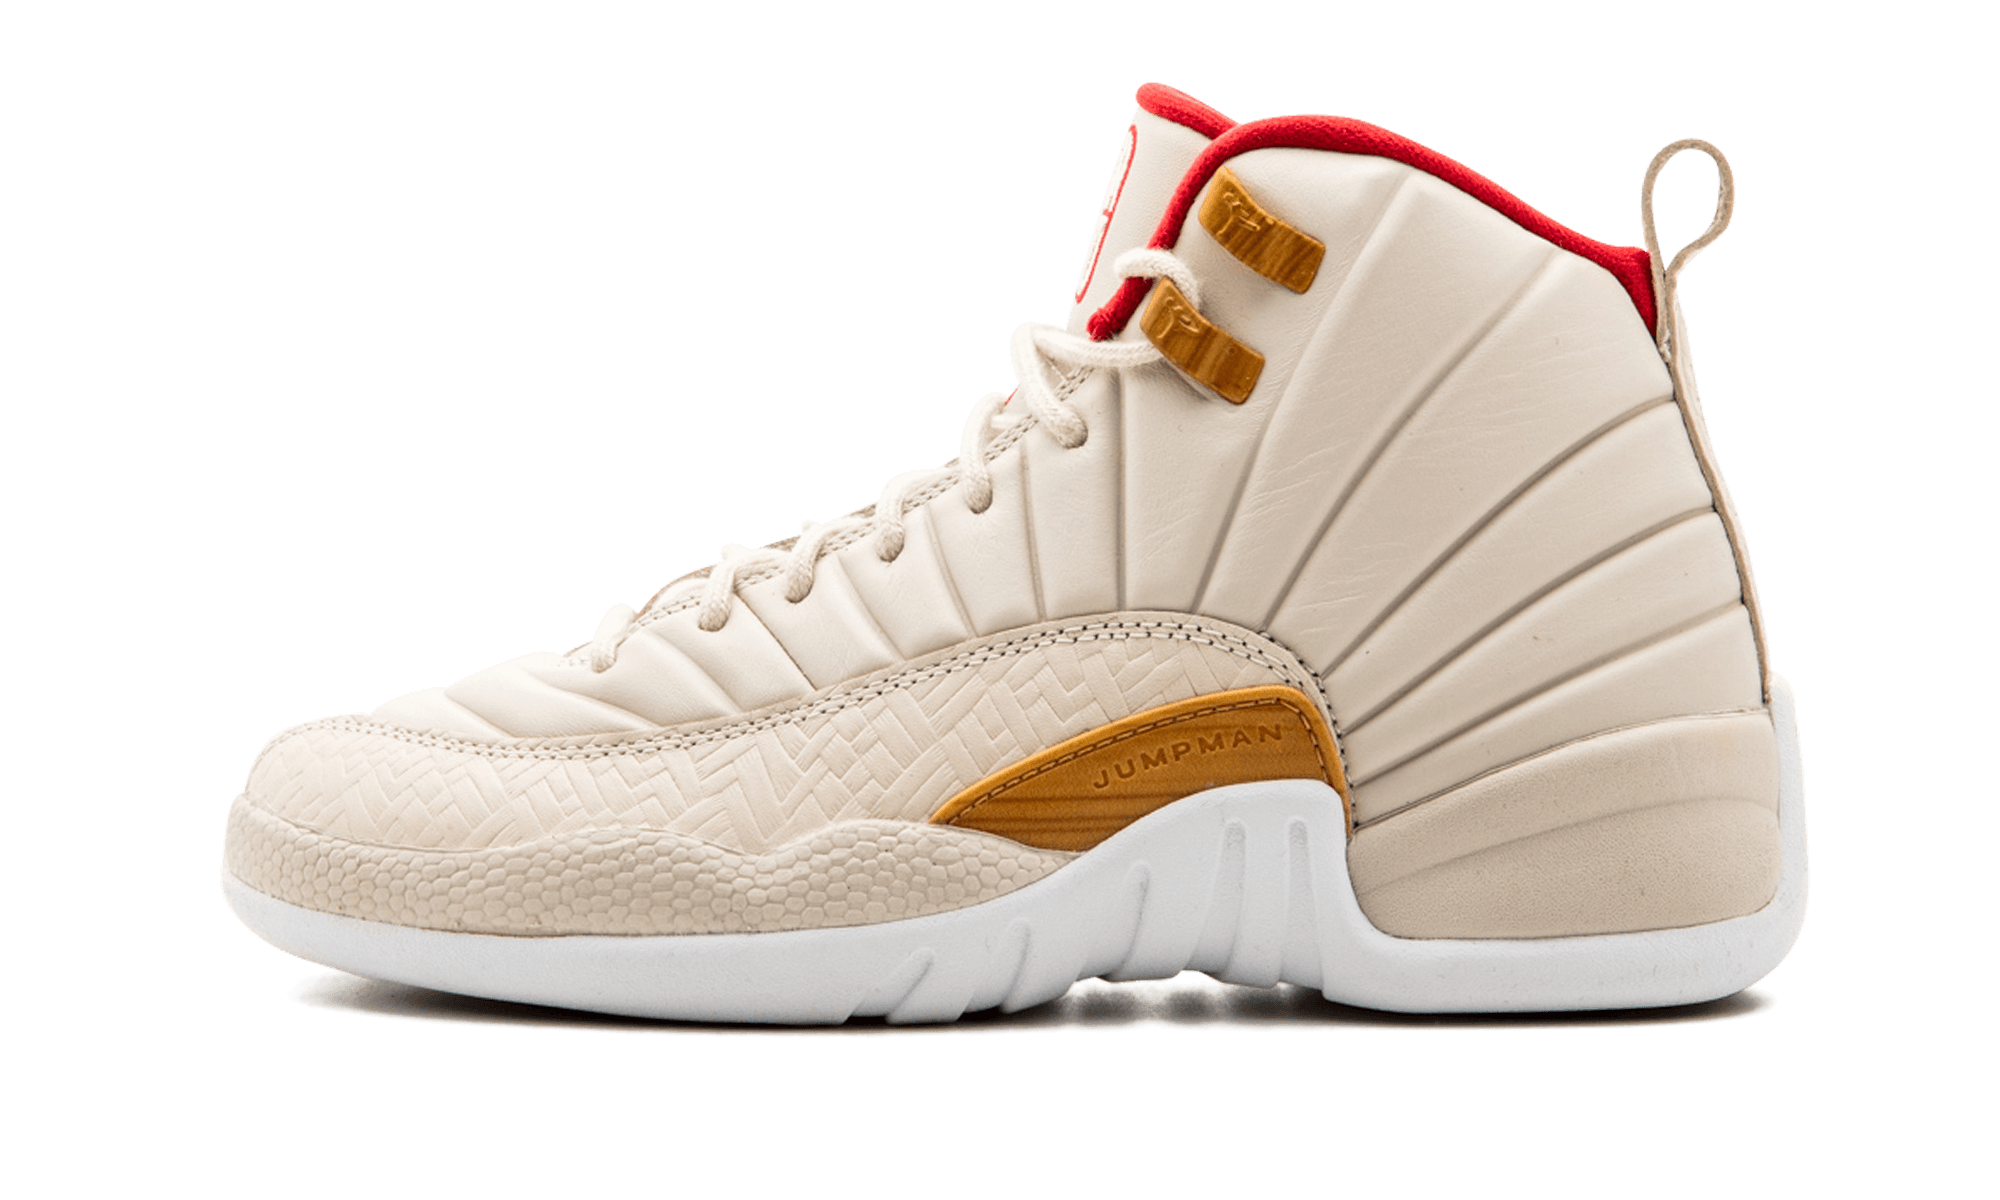 cff959163fe506 Jordan Brand celebrates Chinese New Year 2017 with an Air Jordan 12 Retro  that bears an uncanny resemblance to the